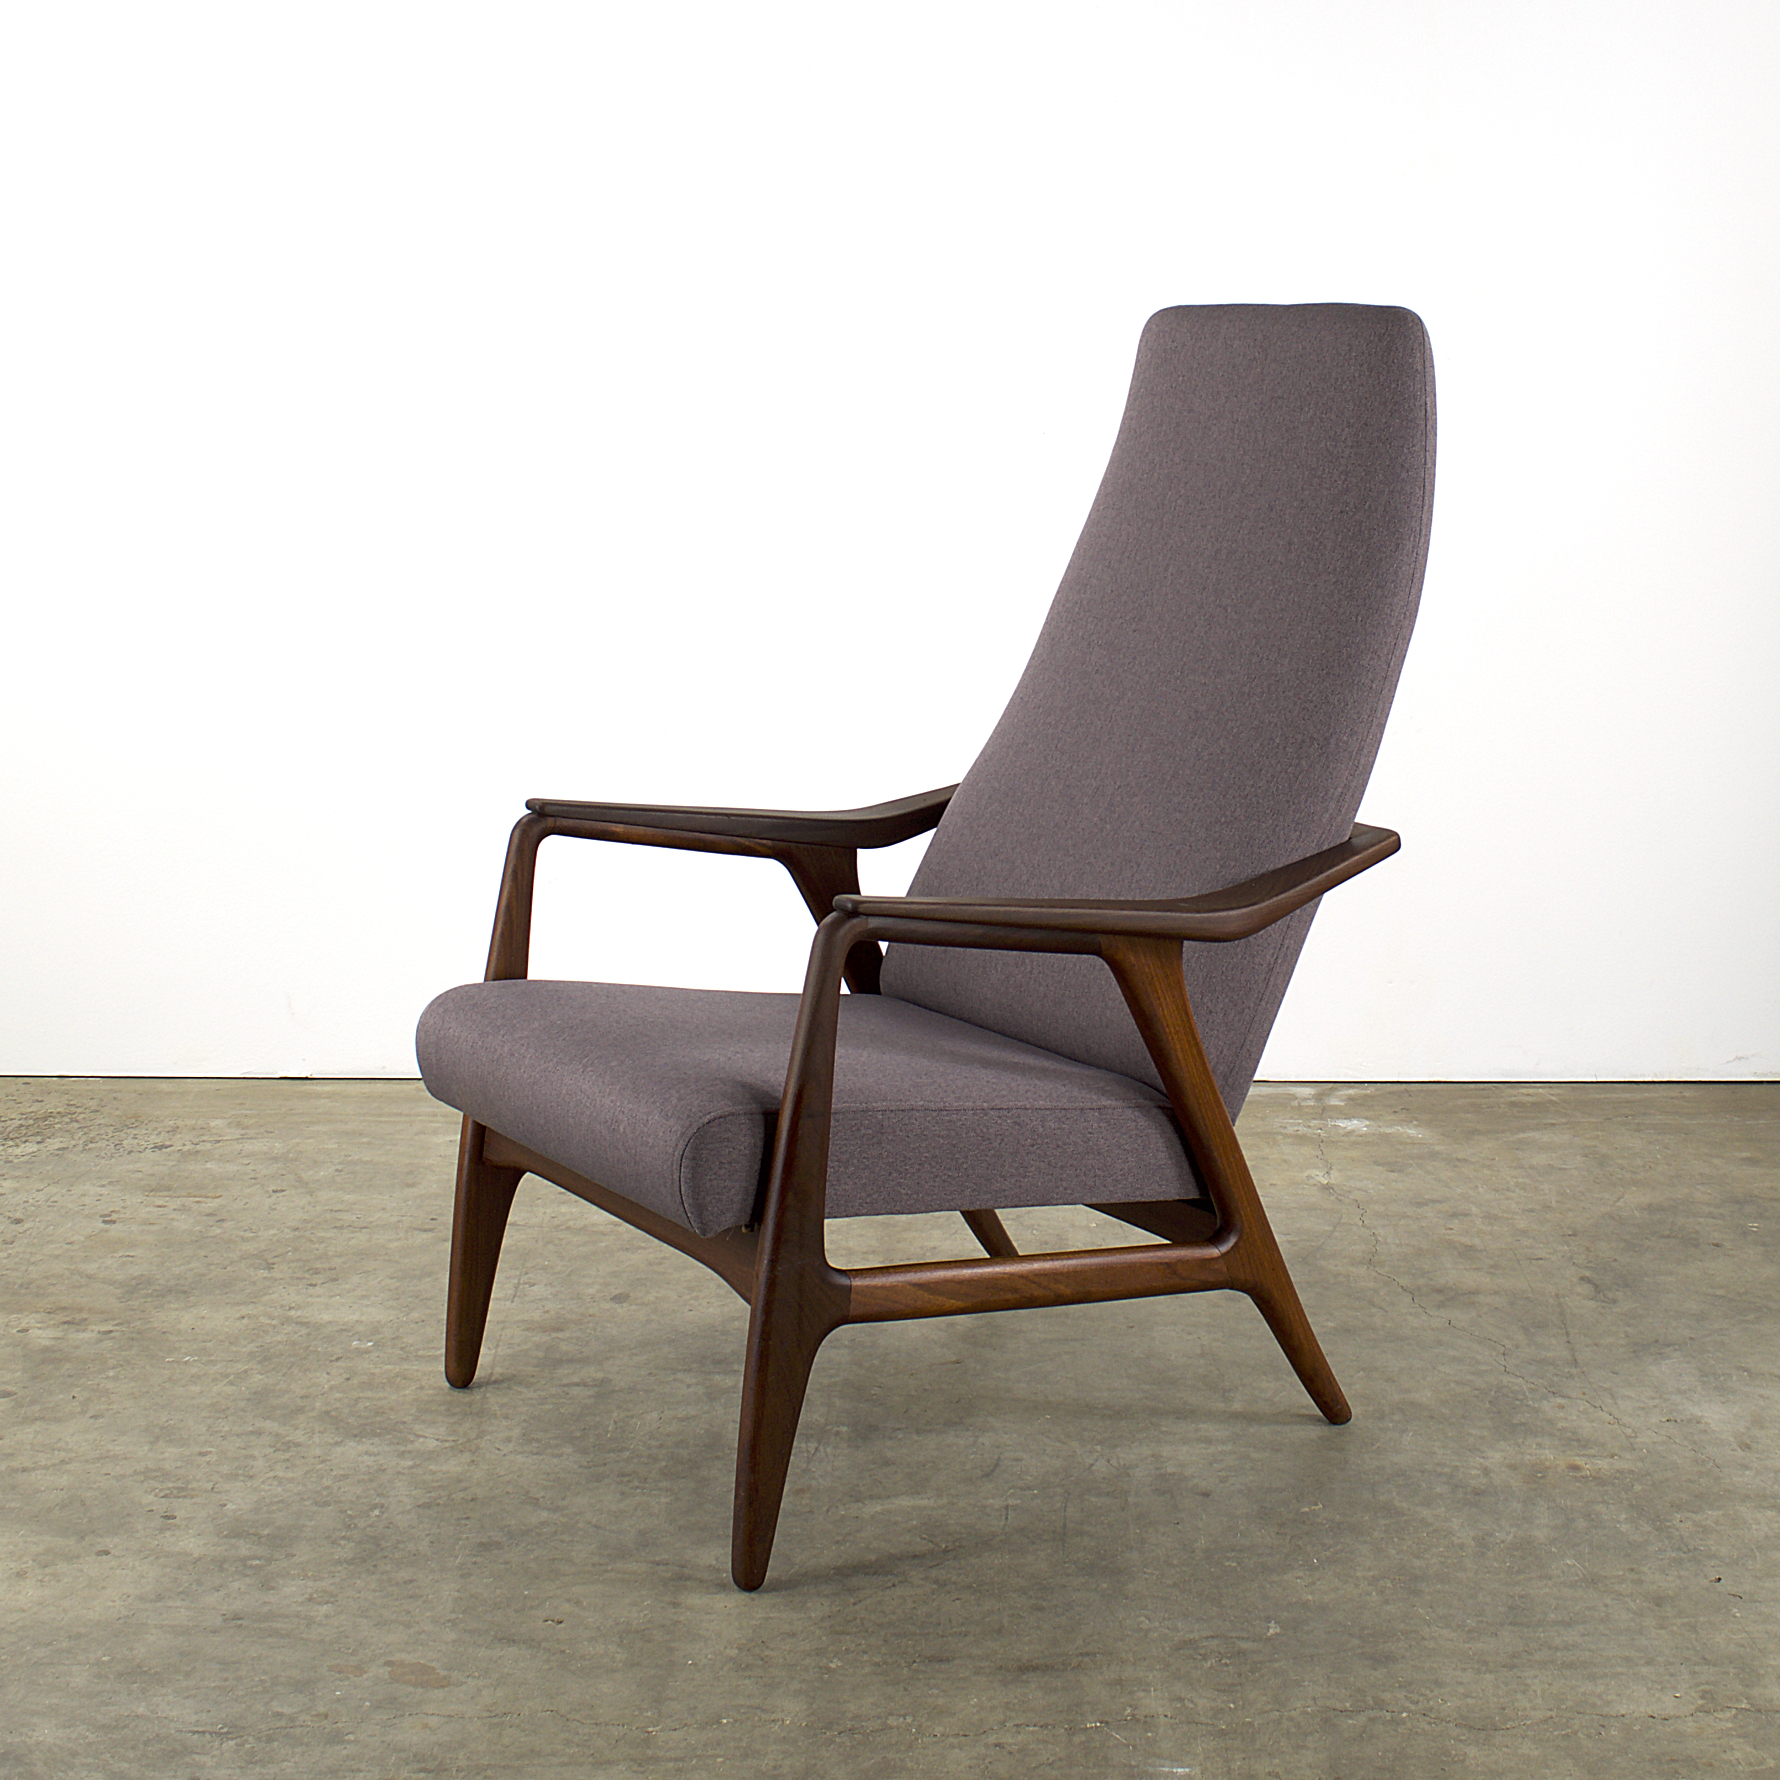 Midcentury teak easy chair fauteuil reupholstered barbmama for Lounge chair kopie